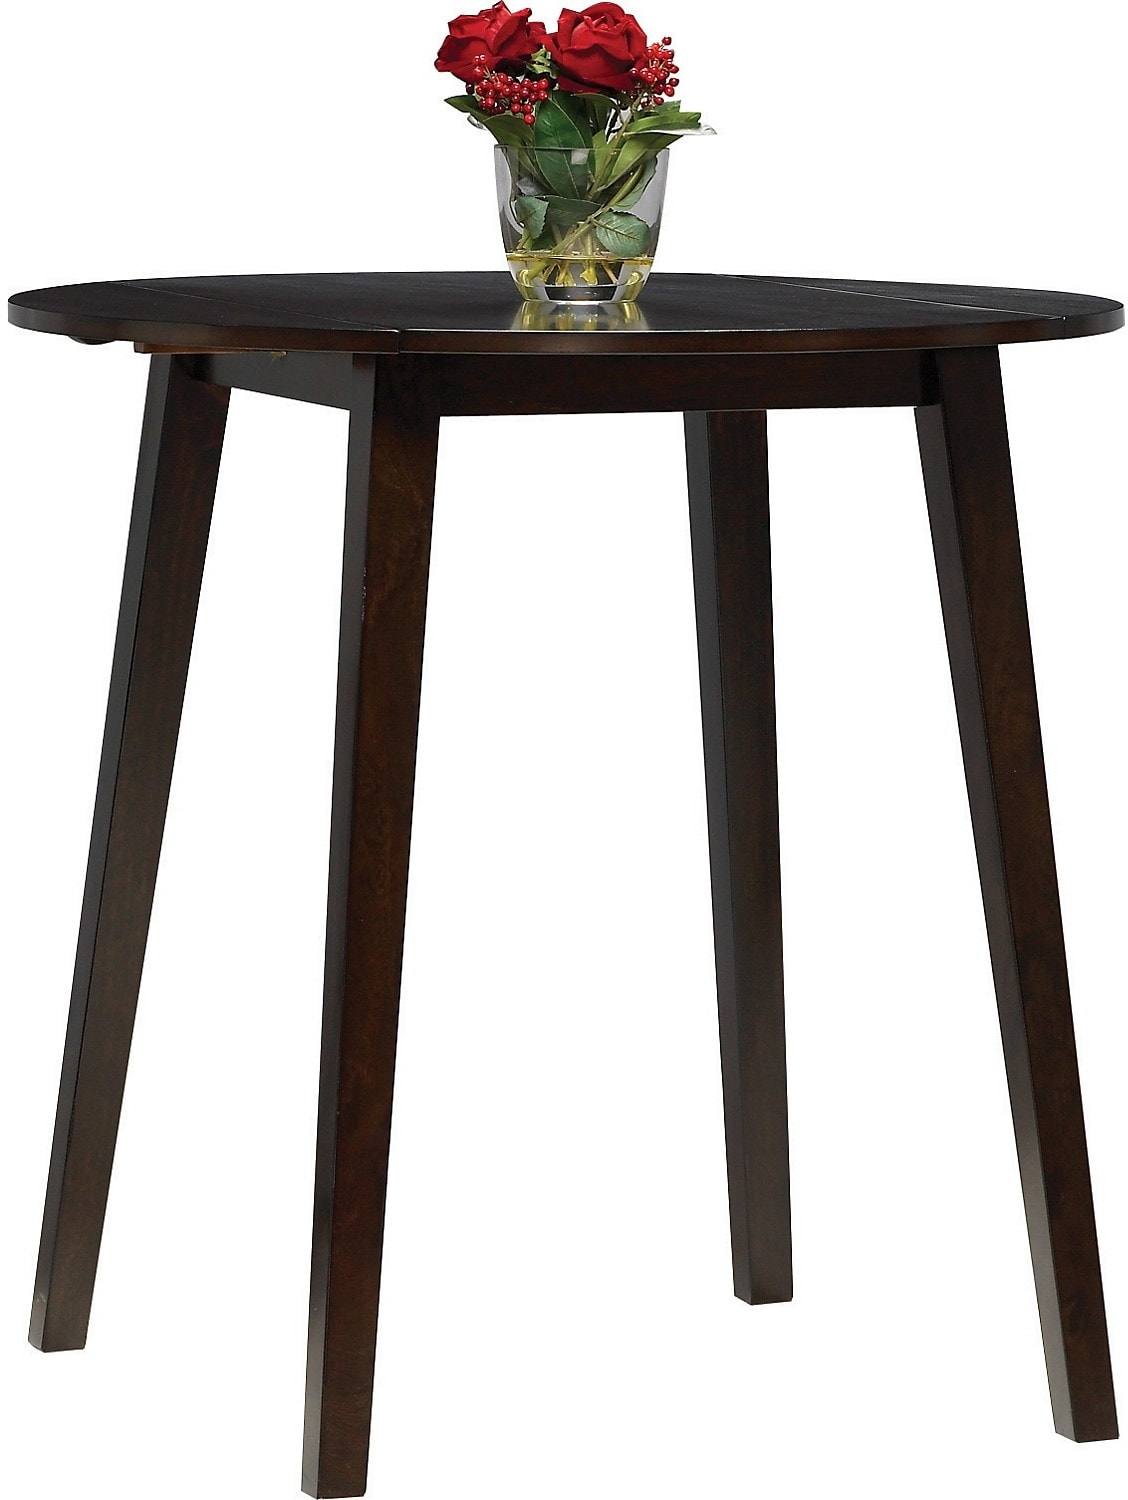 Adara round drop leaf counter height dining table united for Round drop leaf dining table